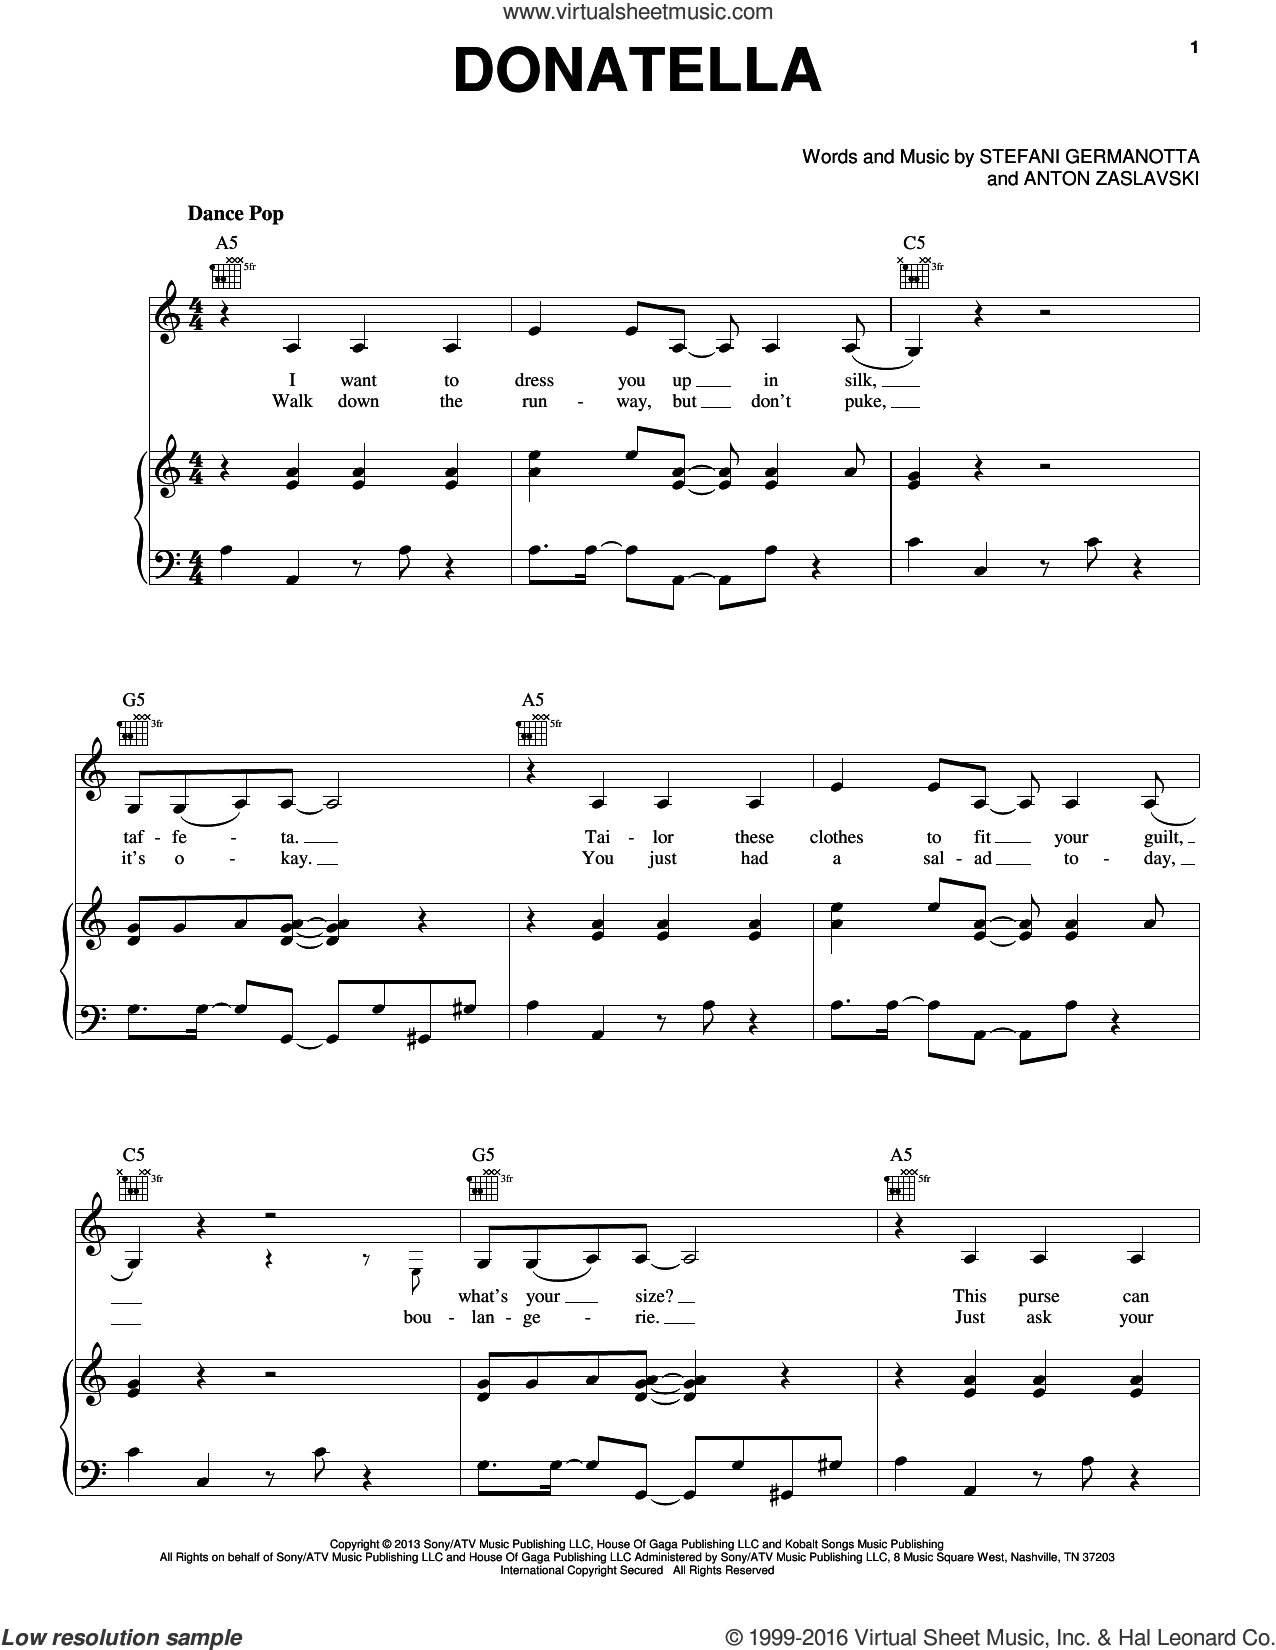 Donatella sheet music for voice, piano or guitar by Lady Gaga and Anton Zaslavski, intermediate